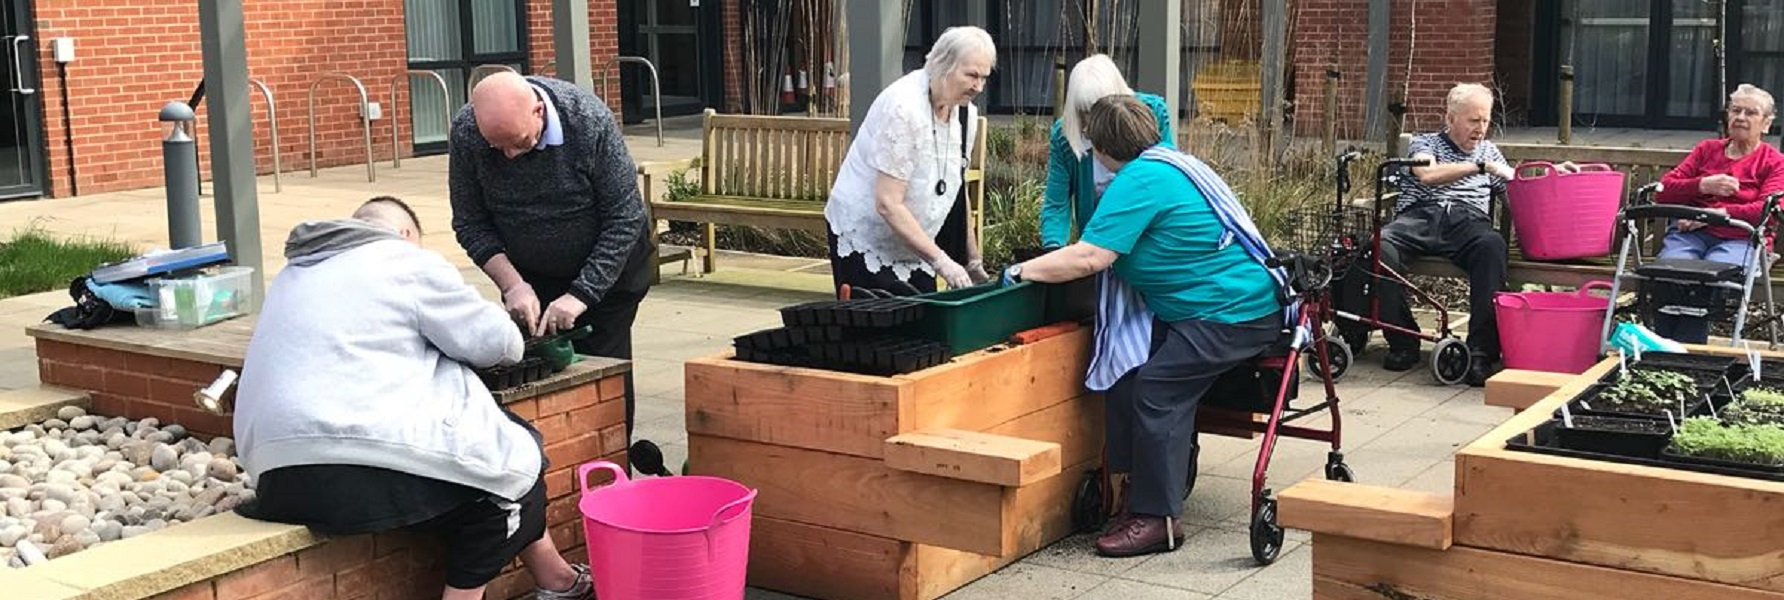 Group of older people sitting at raised beds gardening